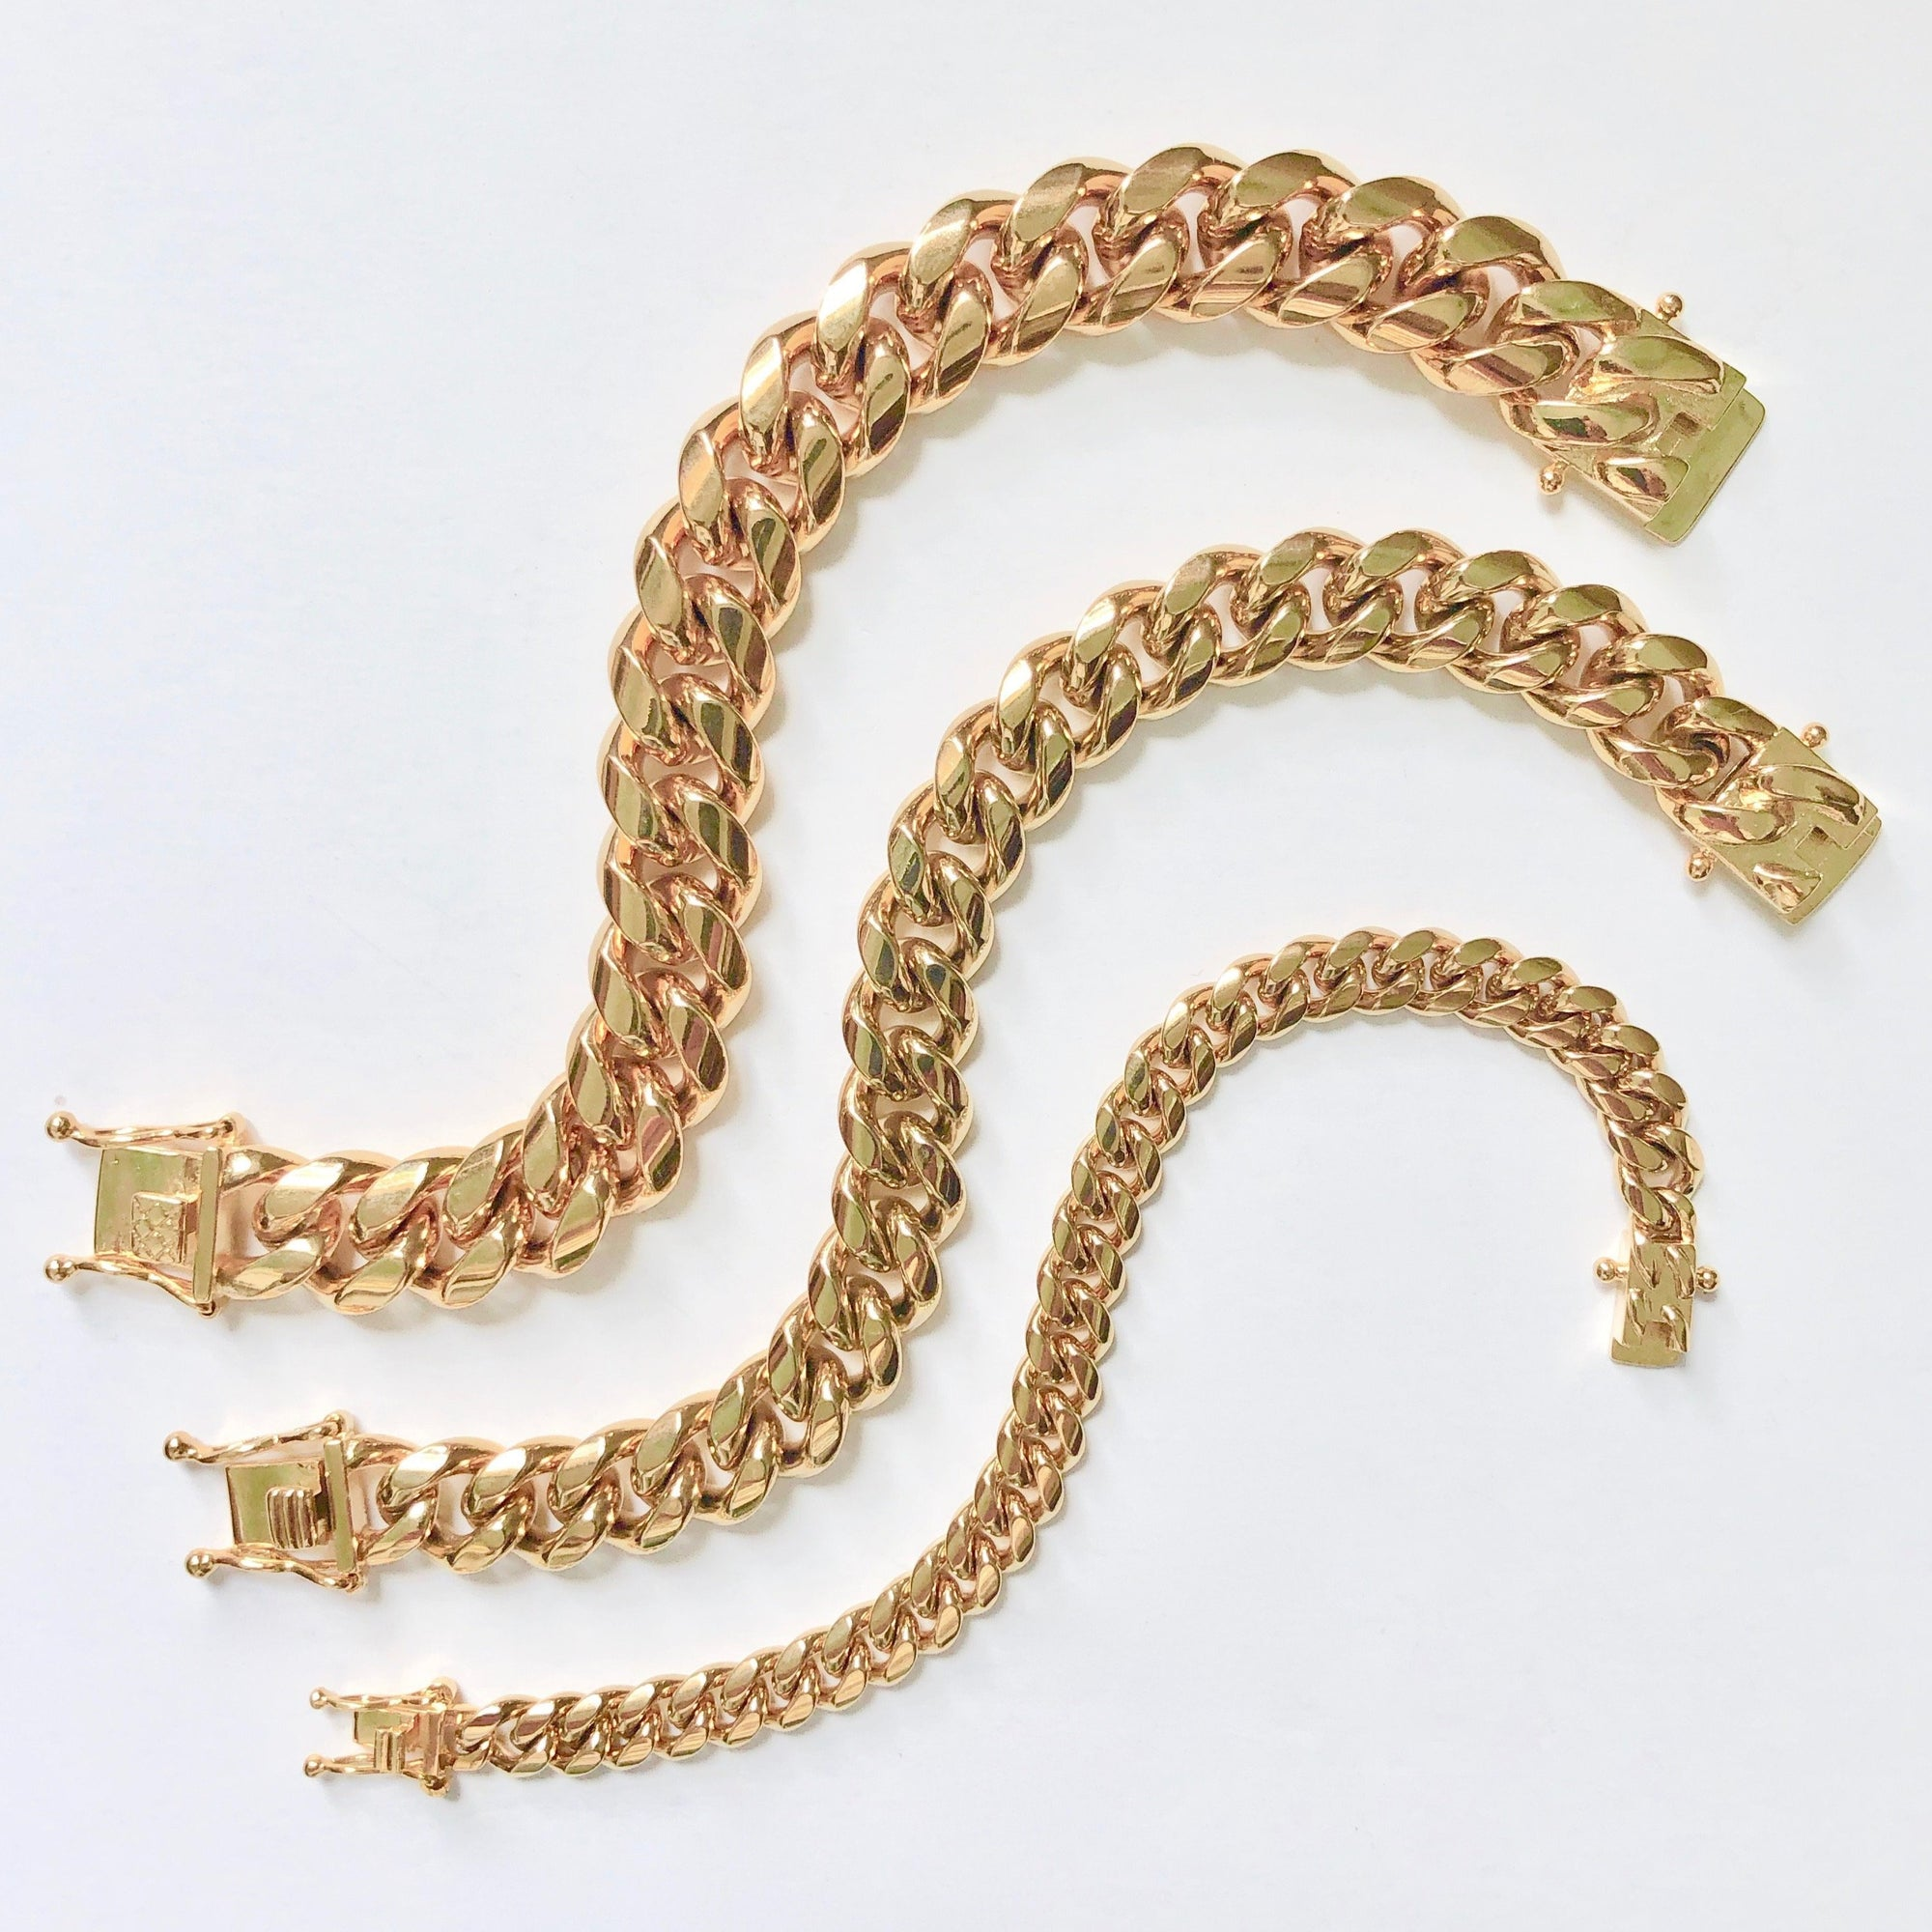 RUTH CURB CHAIN BRACELETS